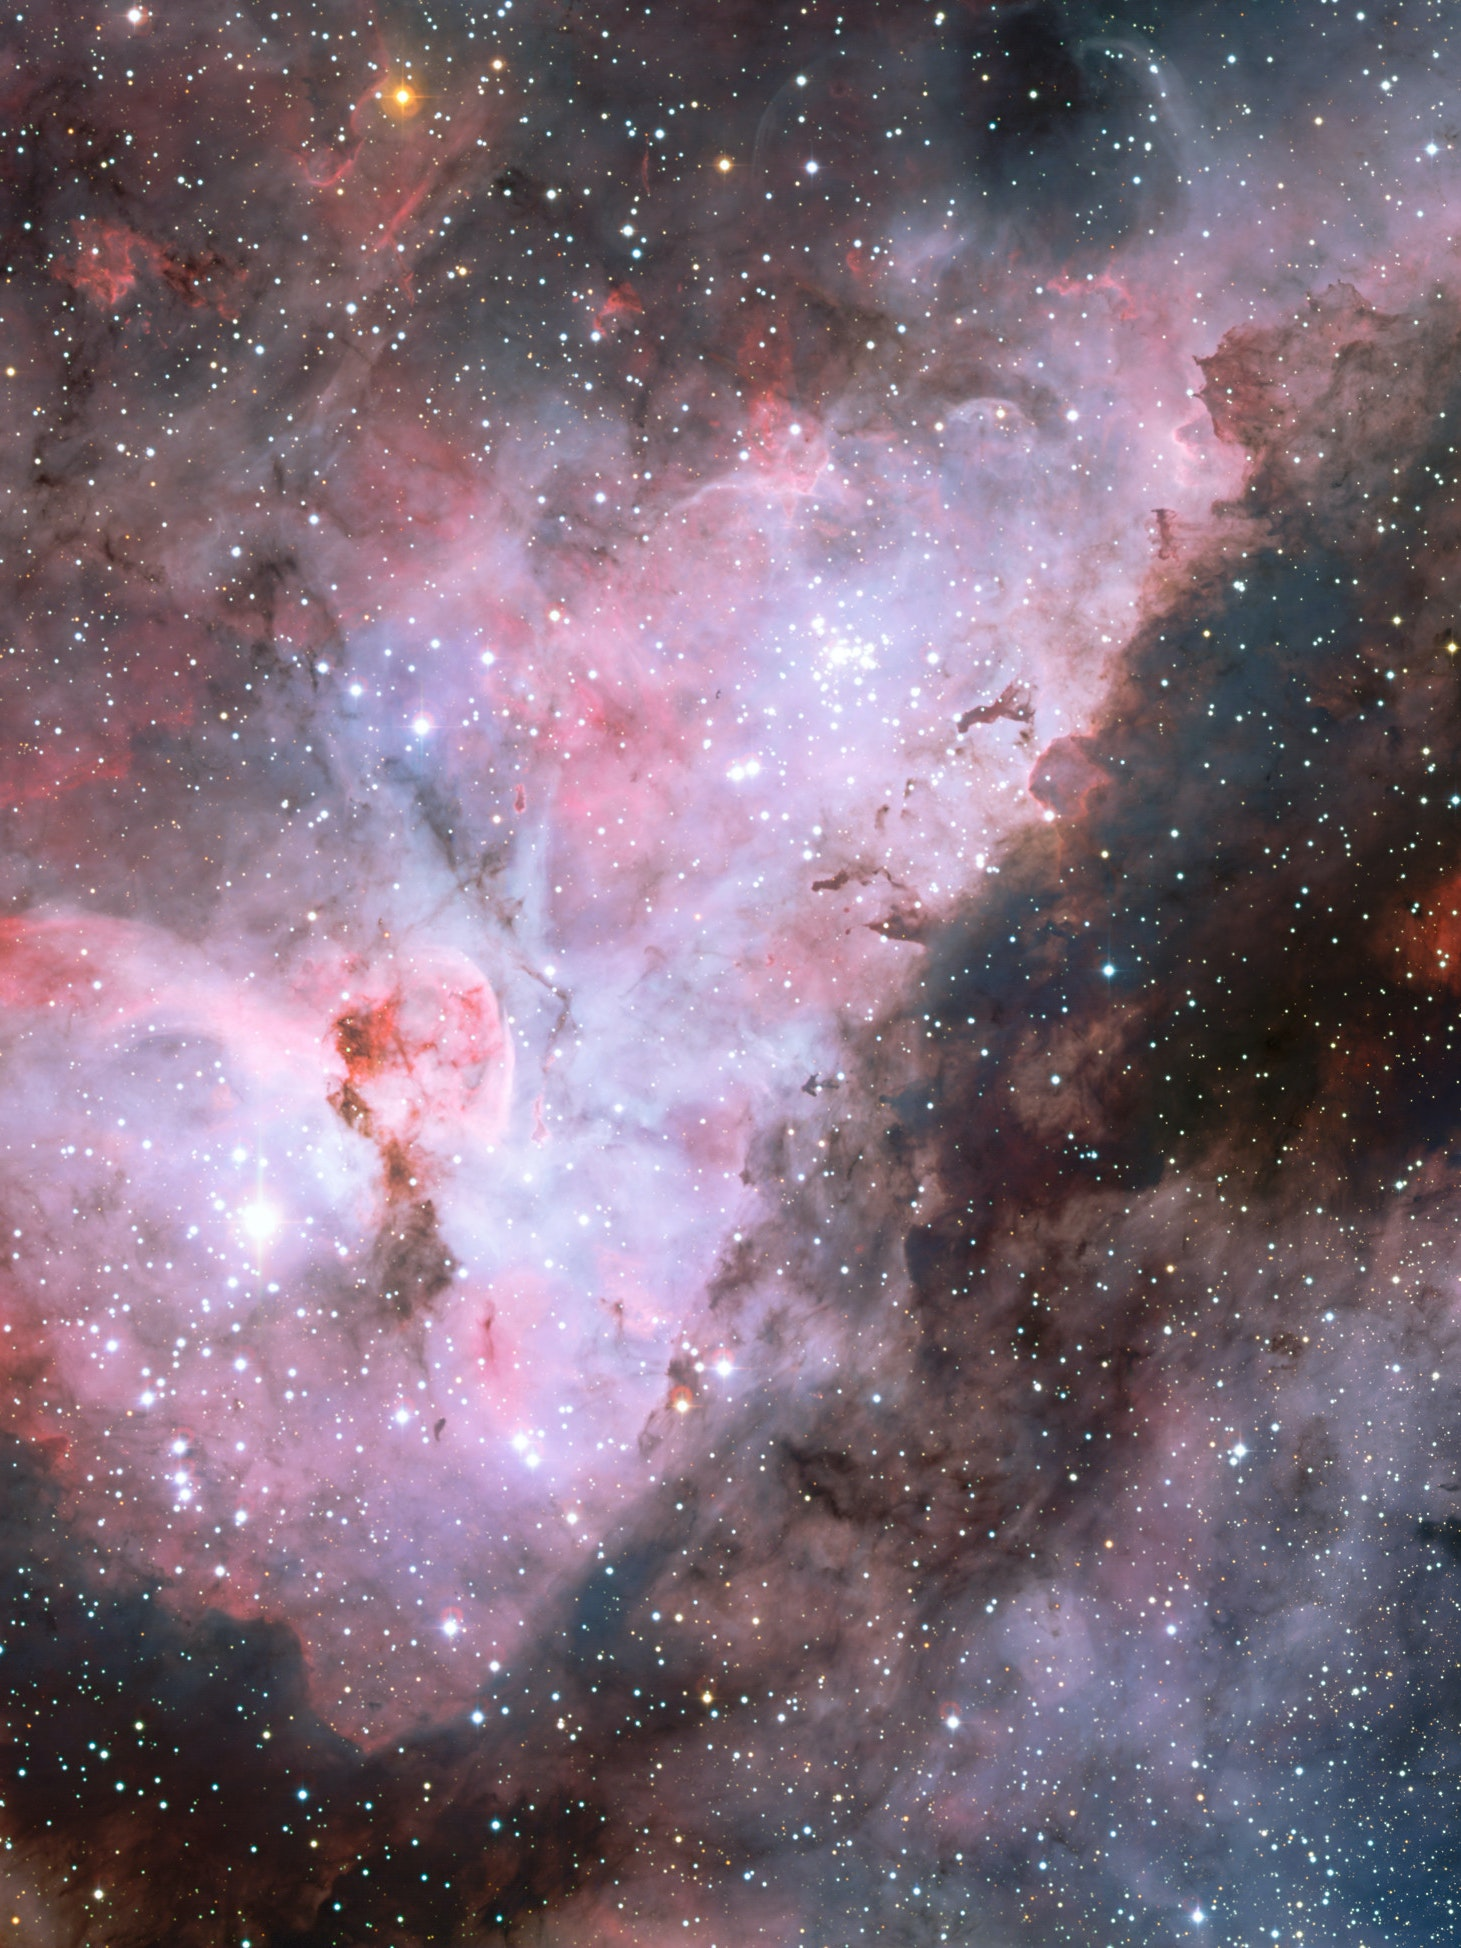 This spectacular panoramic view combines a new image of the field around the WolfRayet star WR 22 in the Carina Nebula (right) with an earlier picture of the region around the unique star Eta Carinae in the heart of the nebula (left). The picture was created from images taken with the Wide Field Imager on the MPG/ESO 2.2-metre telescope at ESO's La Silla Observatory in Chile.